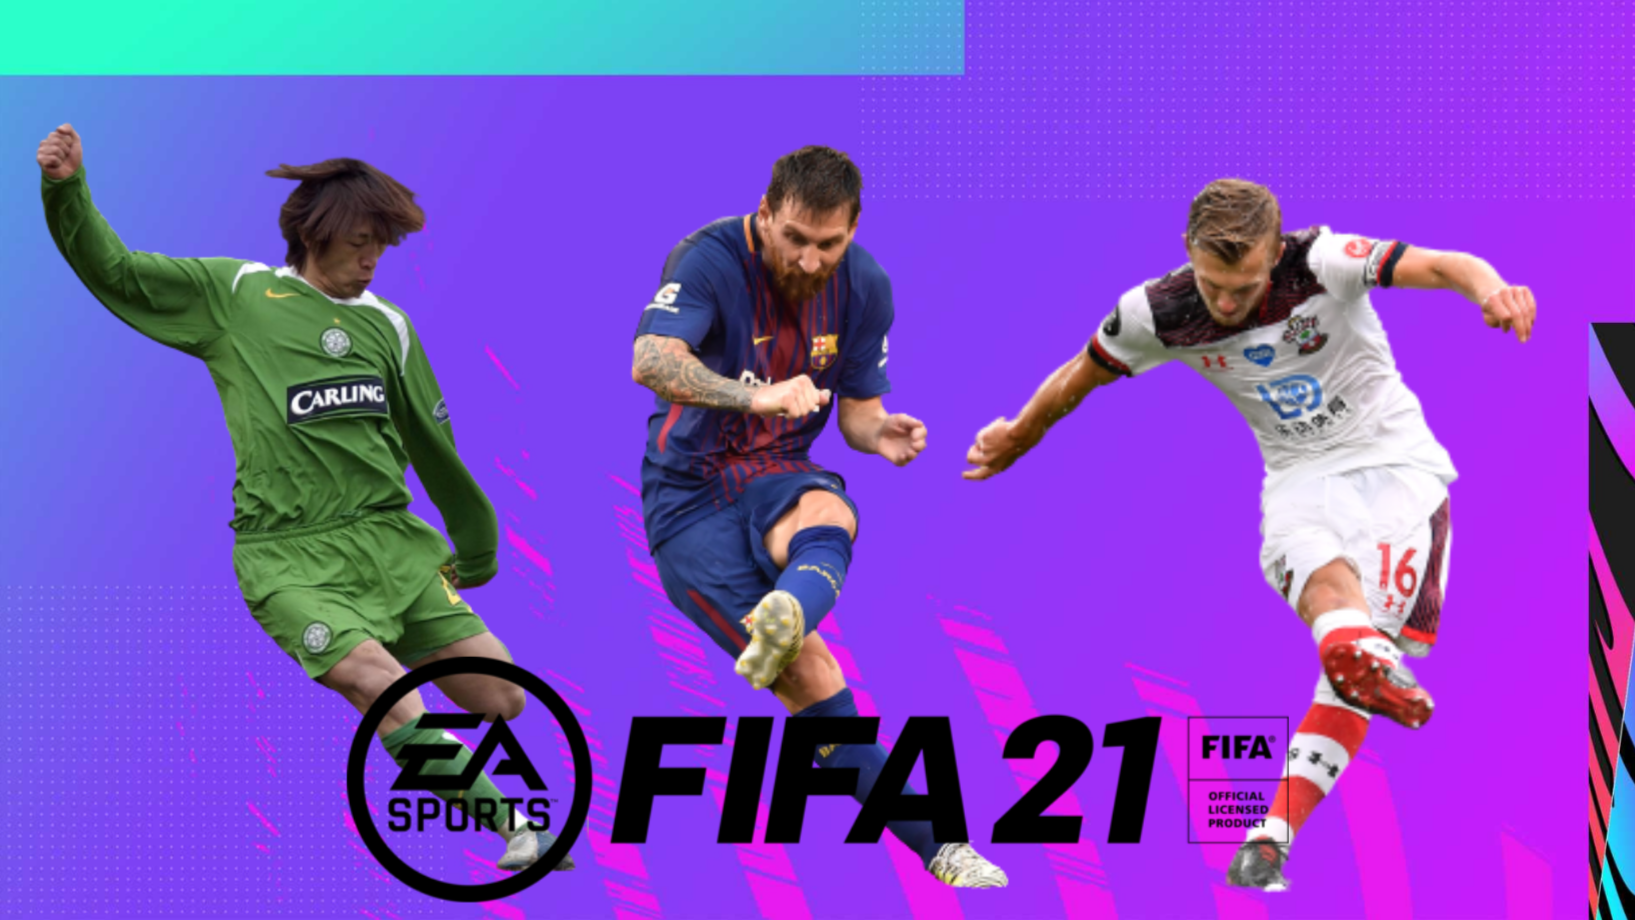 The Top 10 Free Kick Takers On Fifa 21 Sportbible